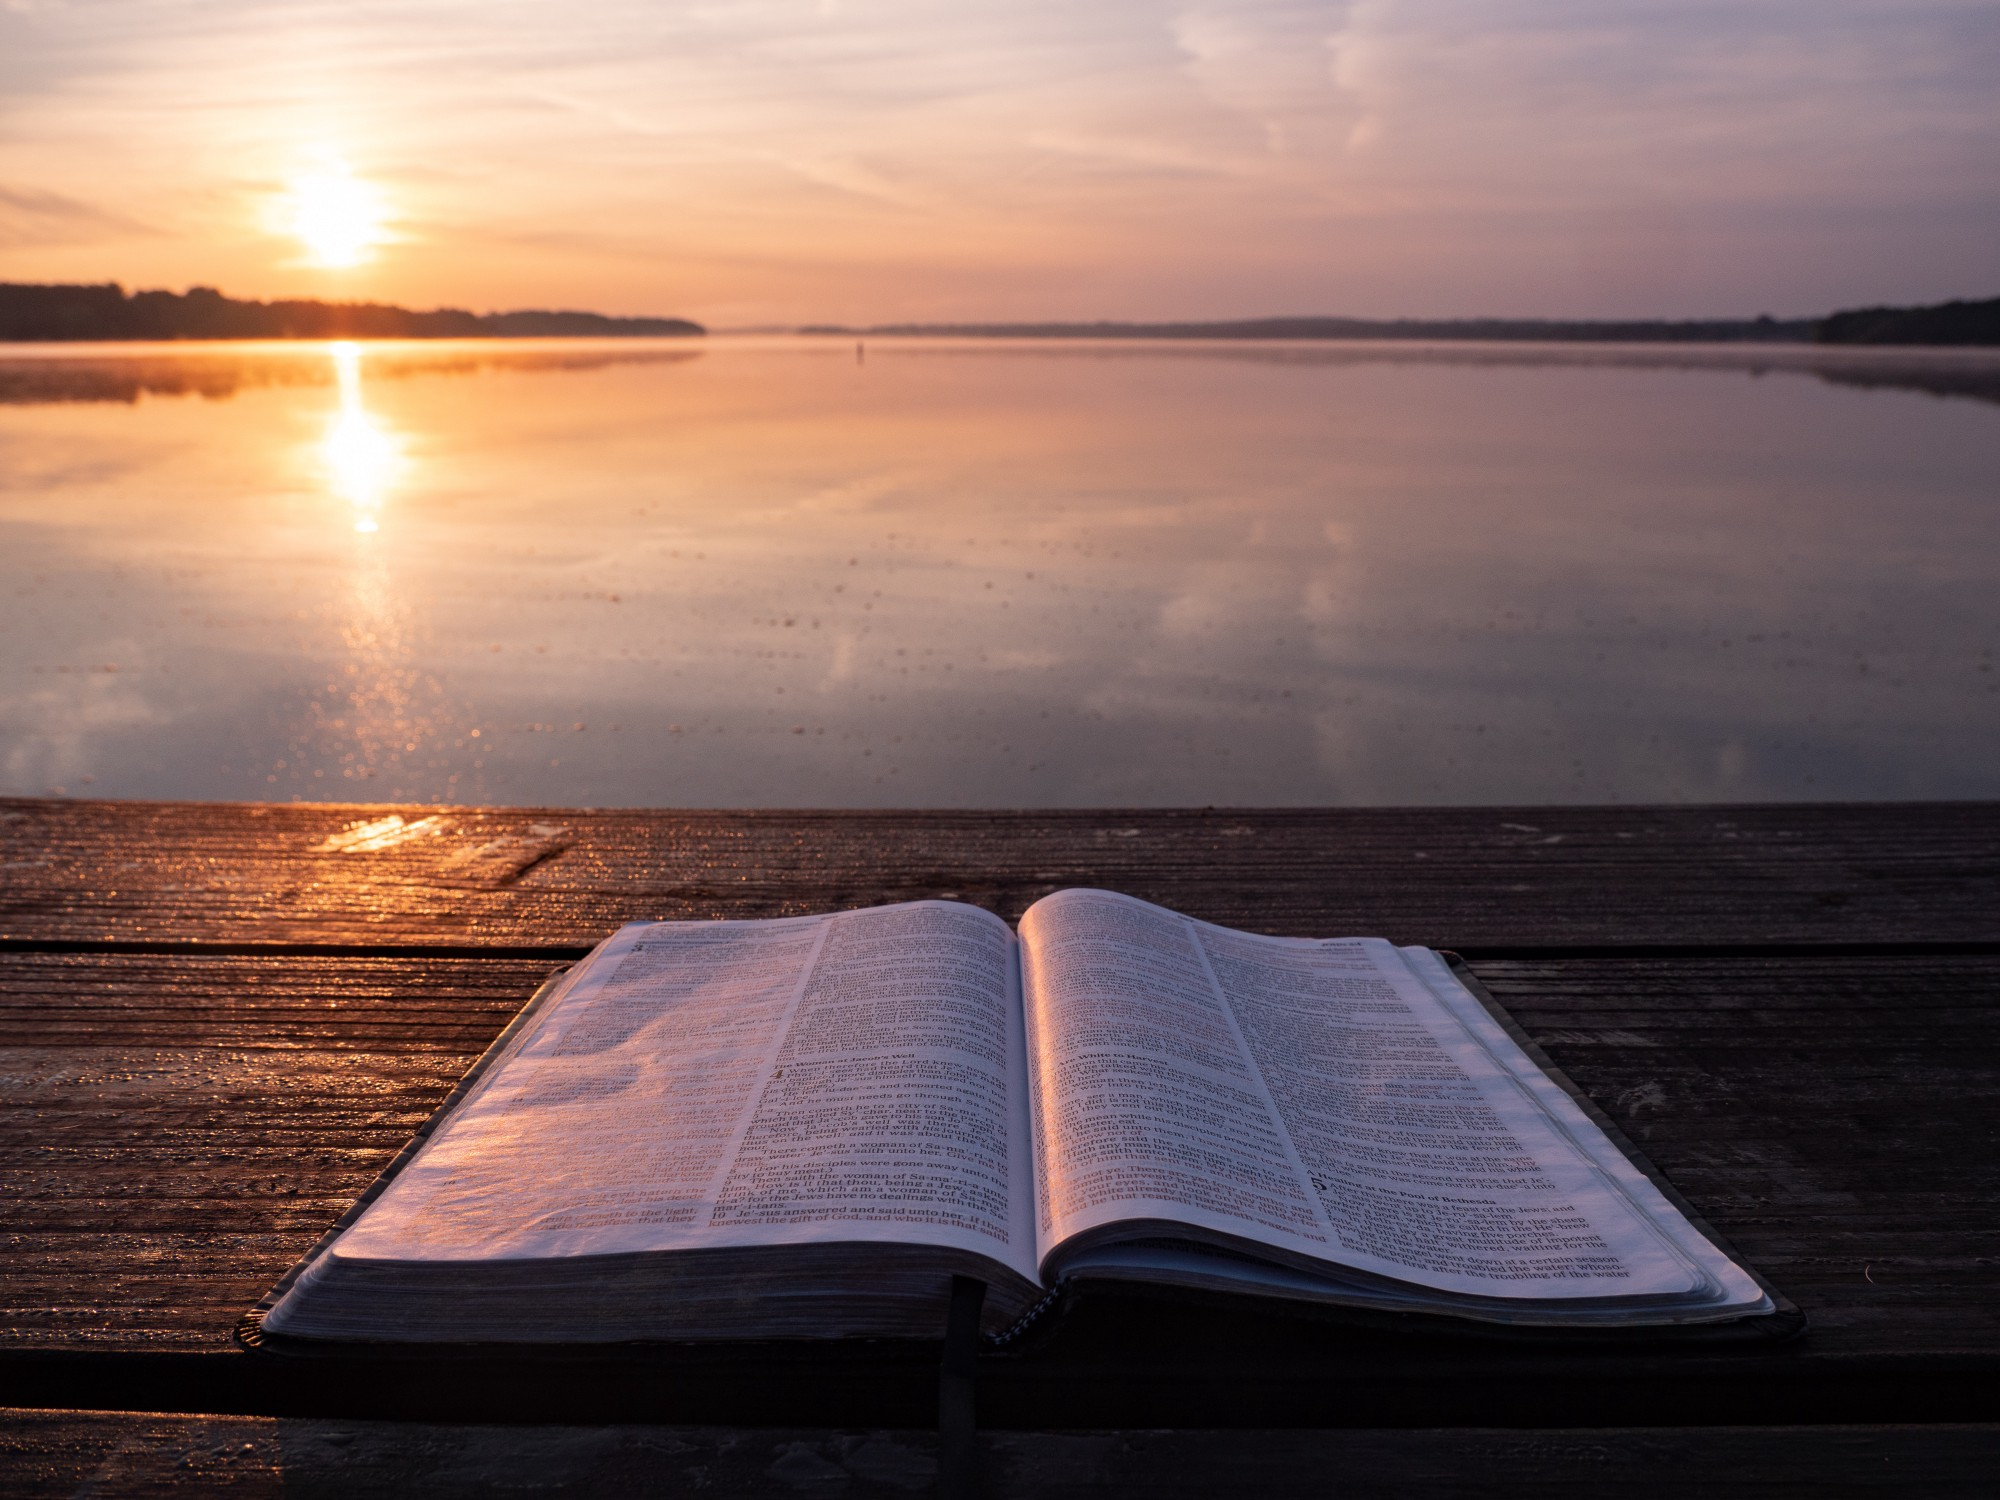 Open Bible on deck next to lake with thin horizon line in the distance golden sun reflecting on the water and deck on left.